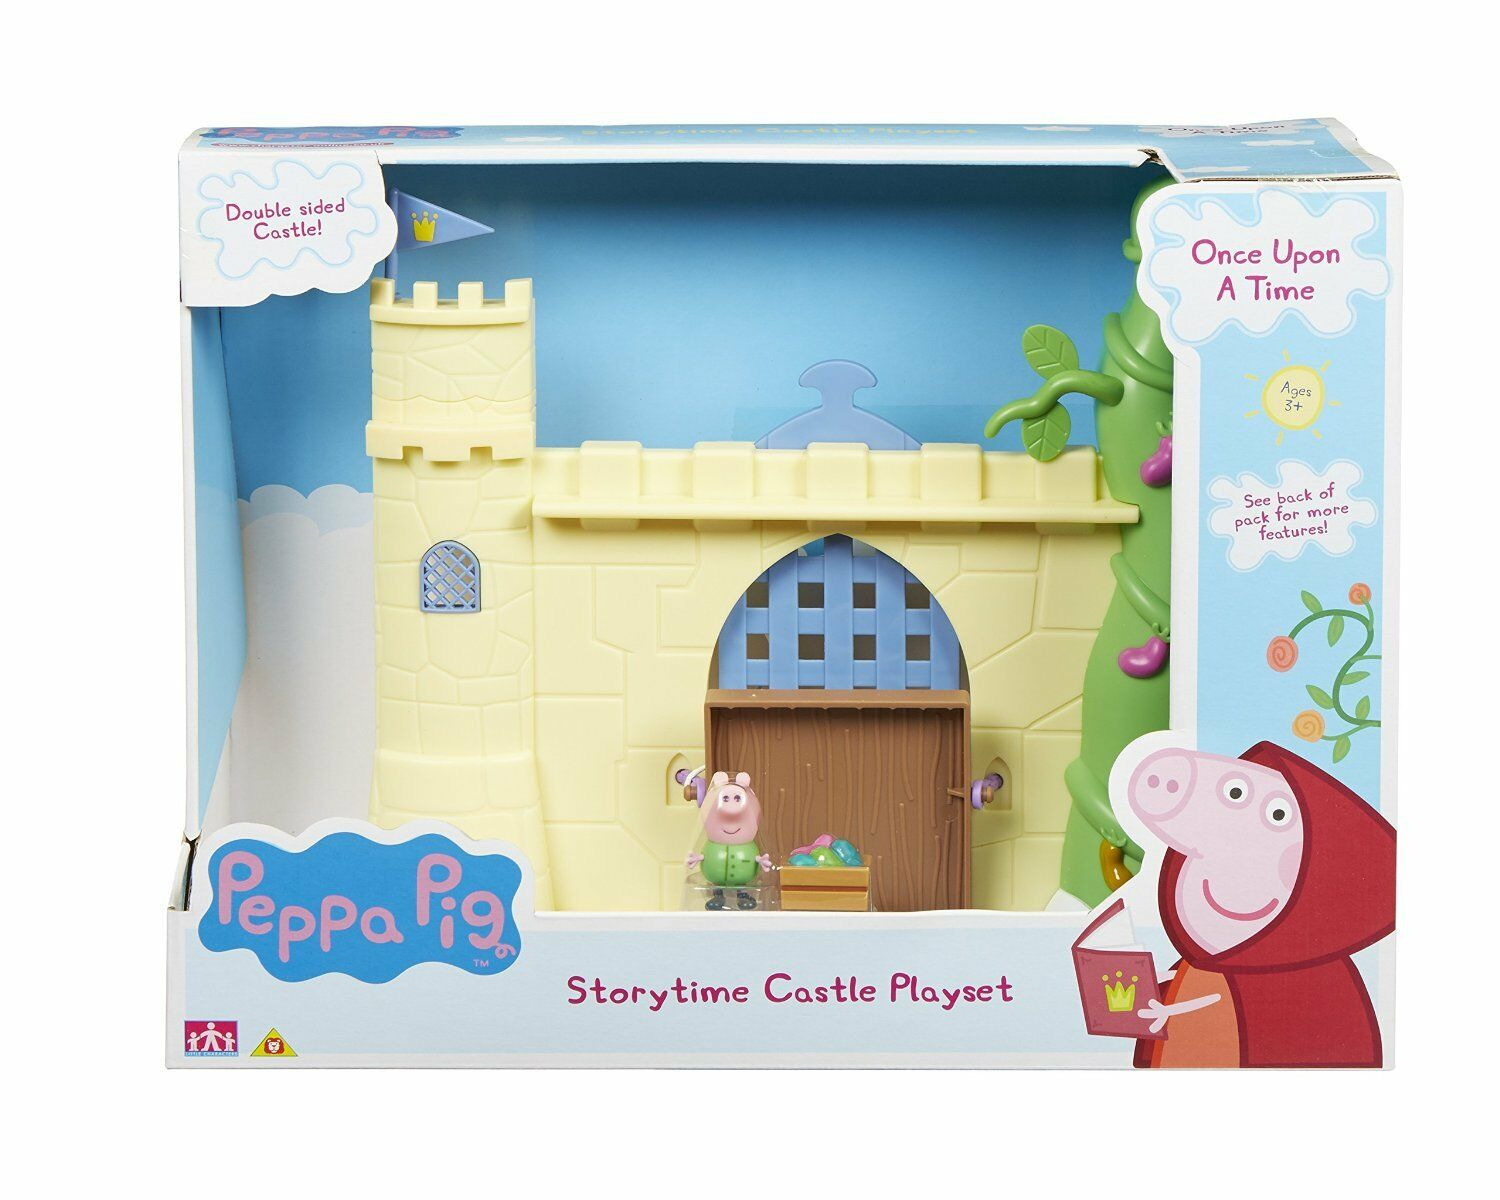 Peppa Pig Once Upon a Time Storytime Castle Playset with George figure